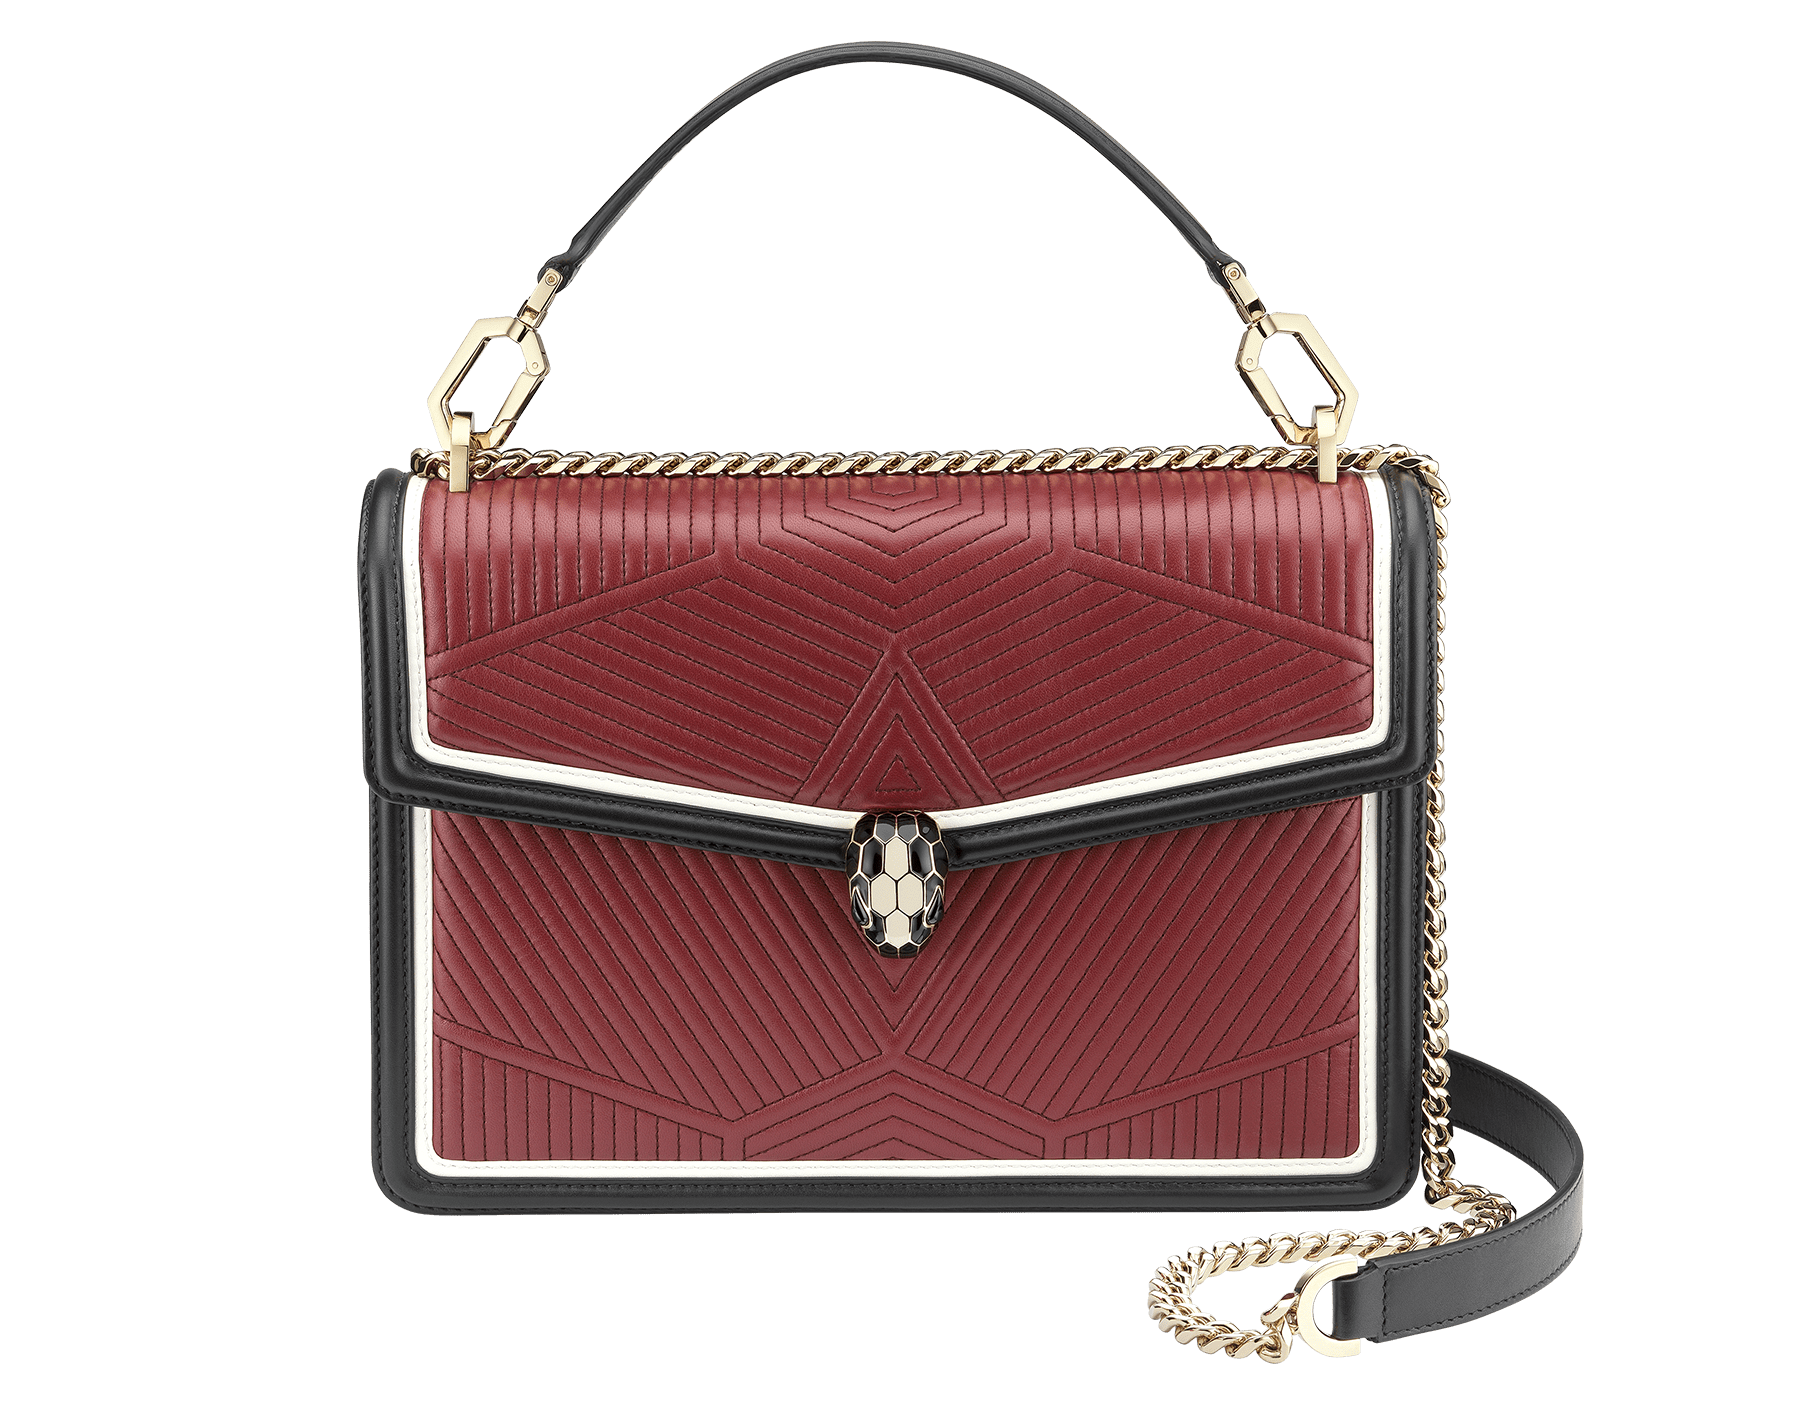 Top handle bag Serpenti Forever featuring a Framed Quilted motif in roman garnet nappa and black smooth calf leather. Brass light gold plated tempting snake head closure in black and white enamel, with eyes in black onyx. 973-FQDc image 1